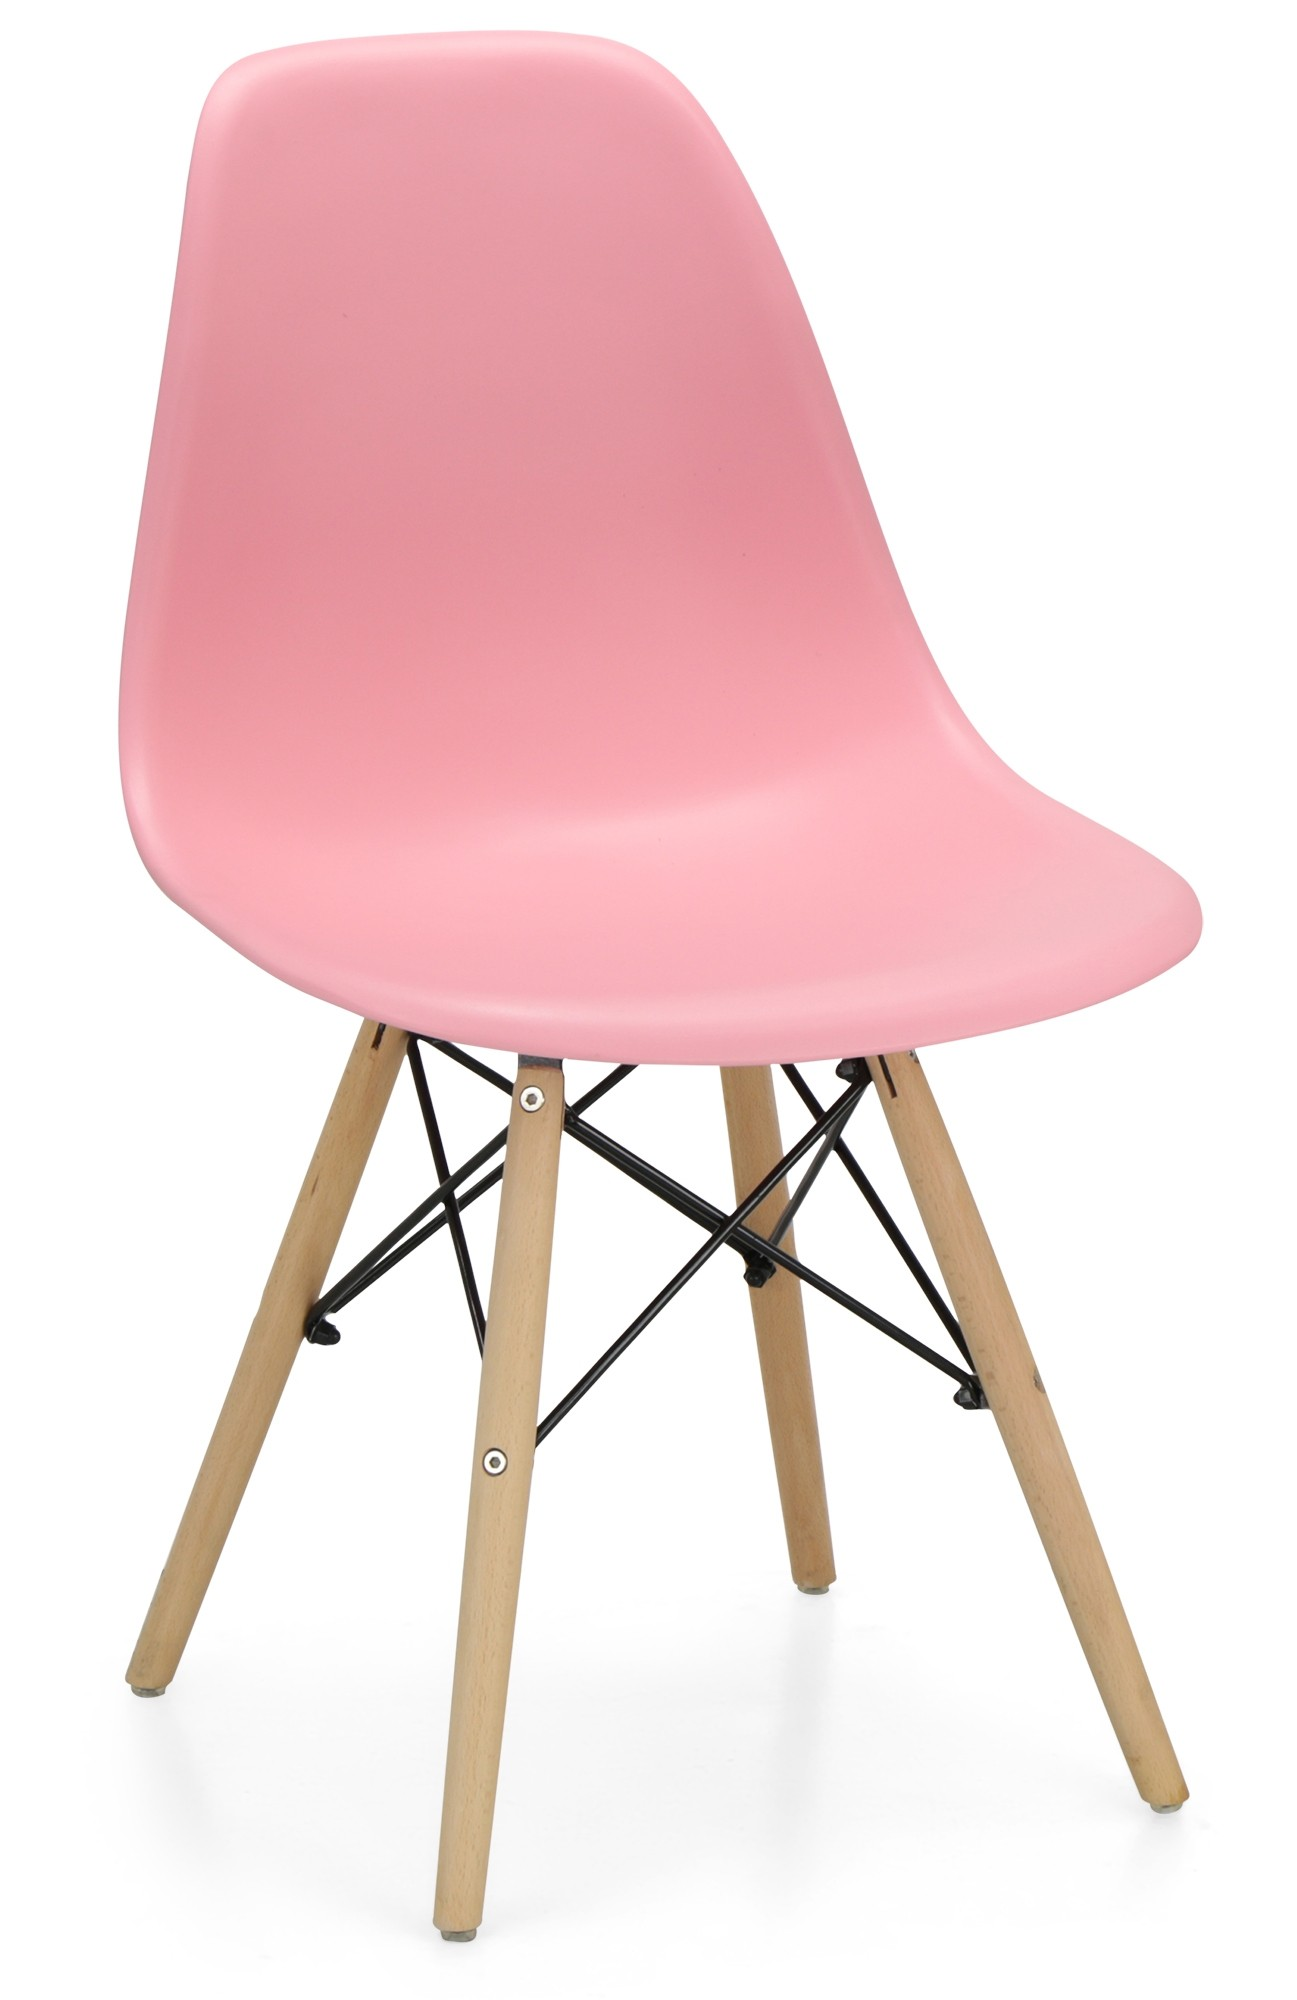 pink egg chair replica design wallpaper eames designer chairs seating